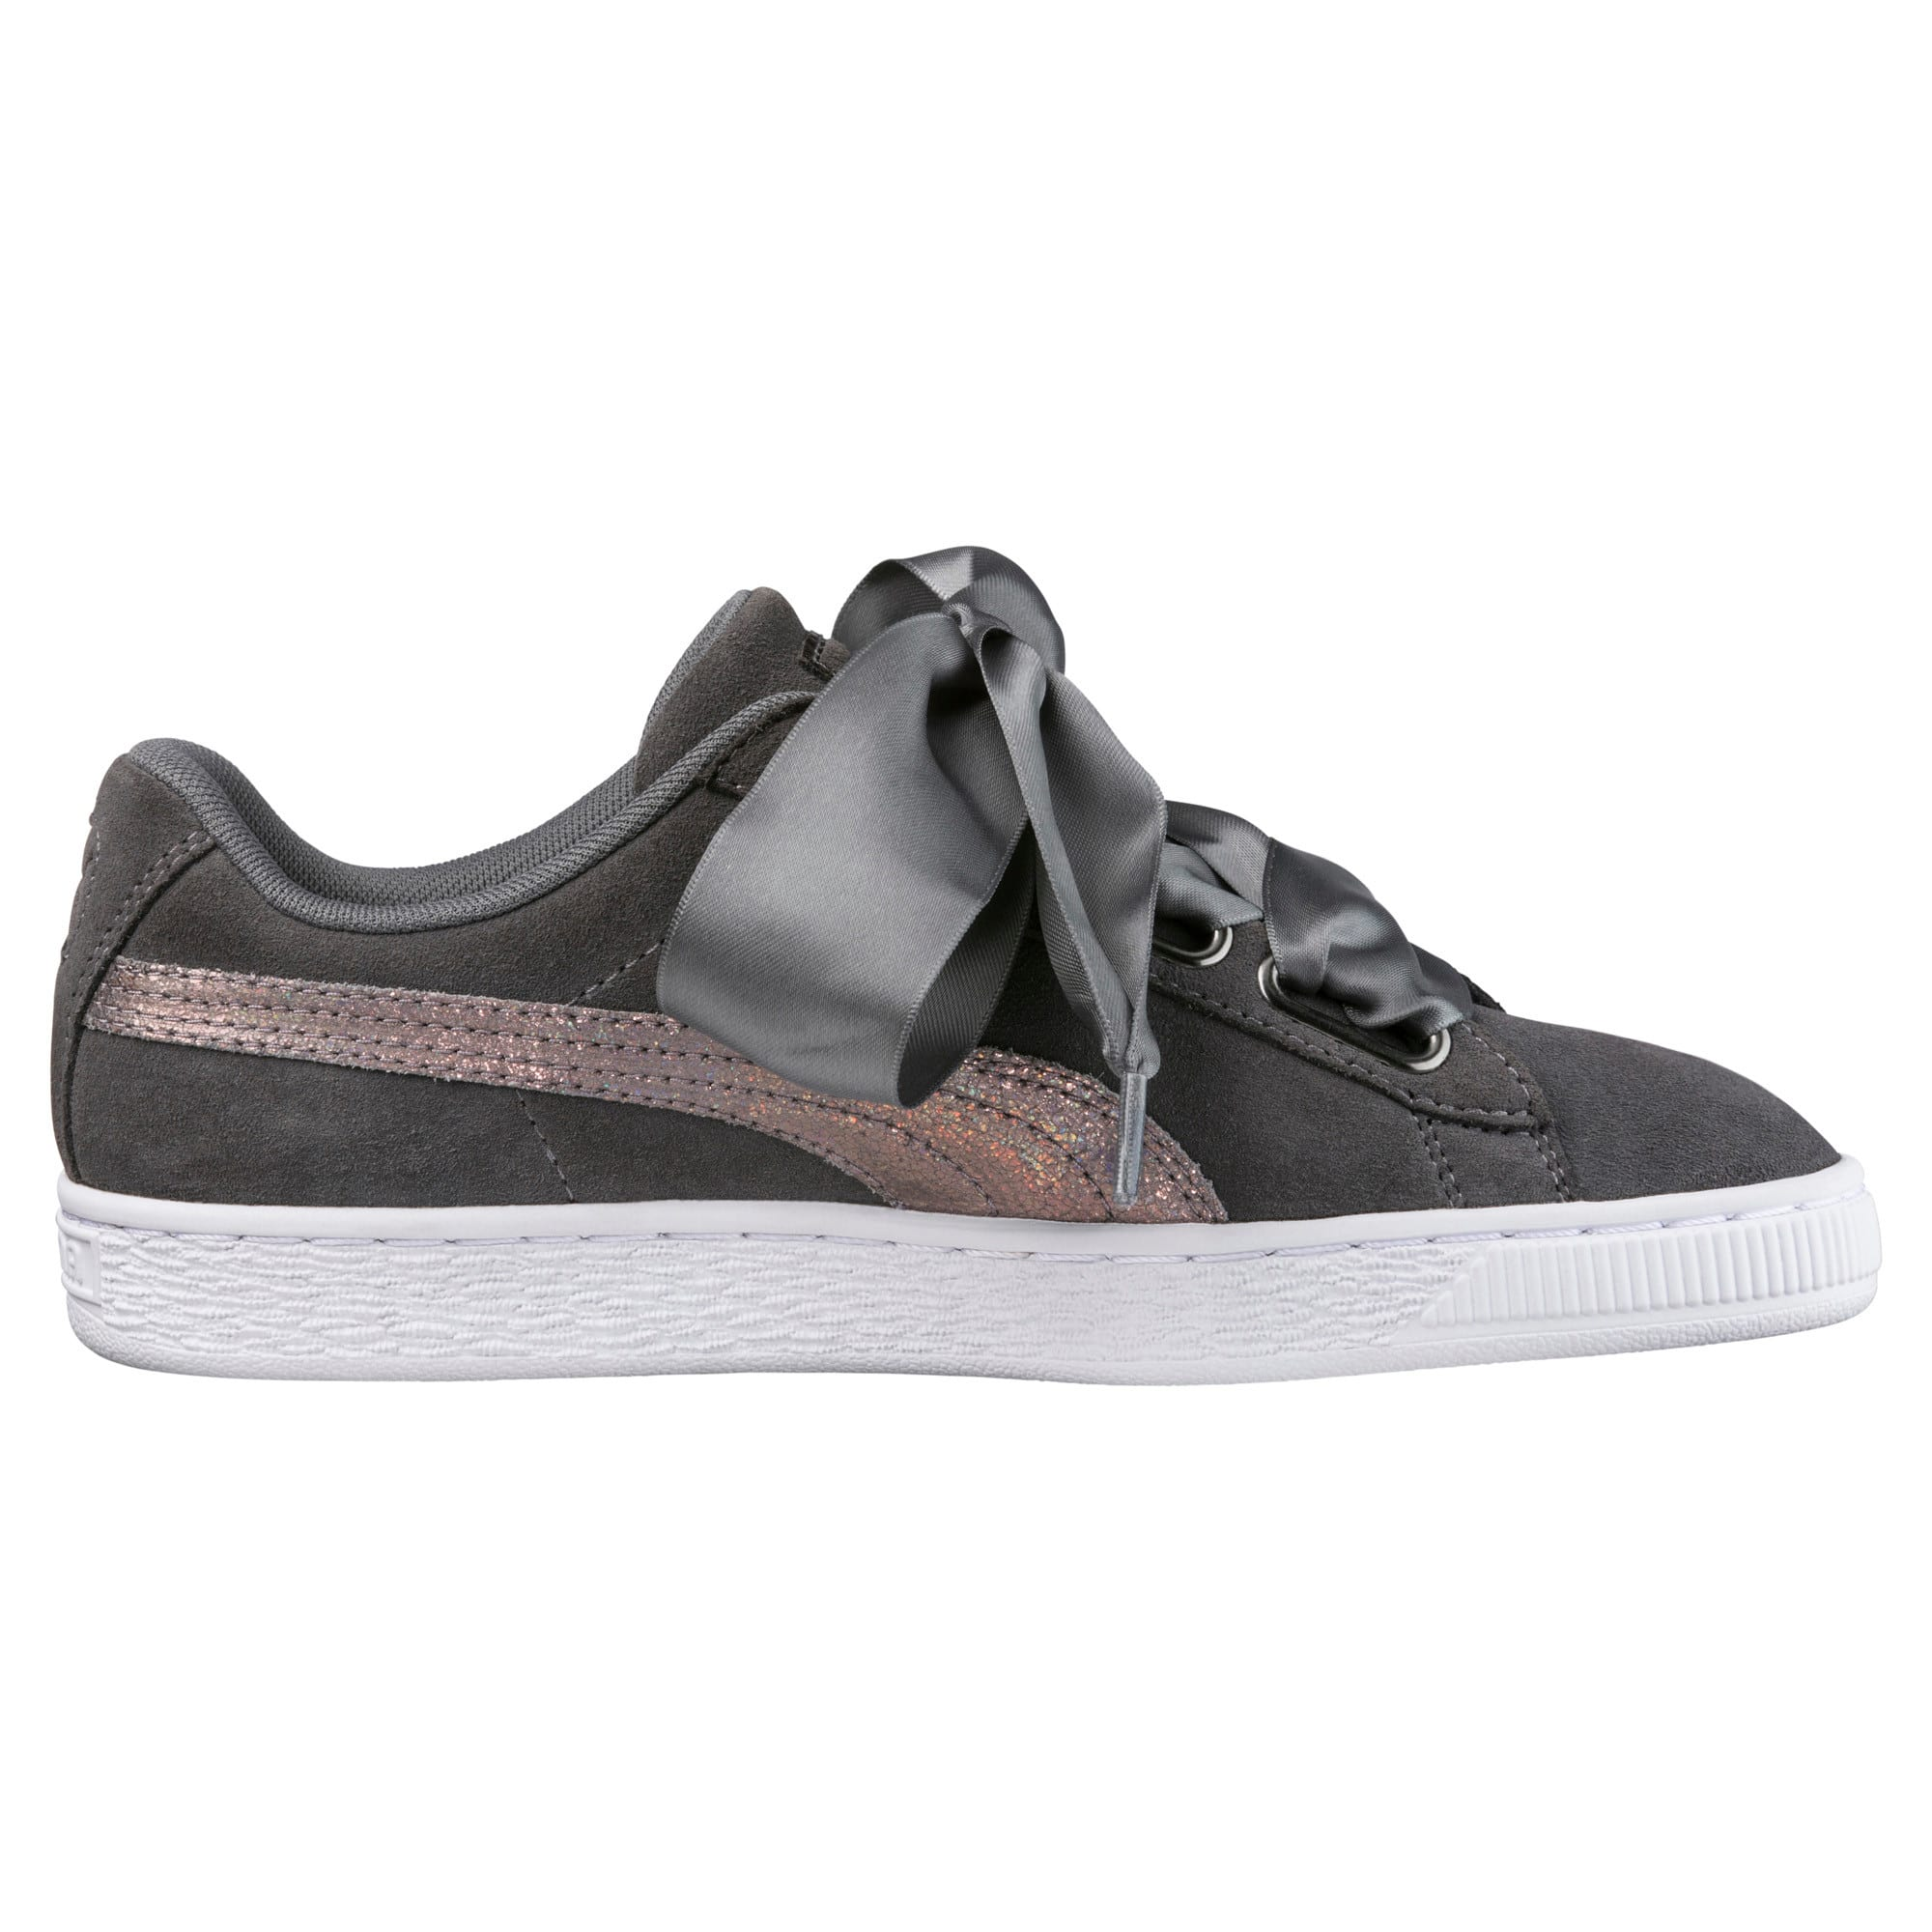 Thumbnail 4 of Suede Heart LunaLux Women's Trainers, Smoked Pearl, medium-IND